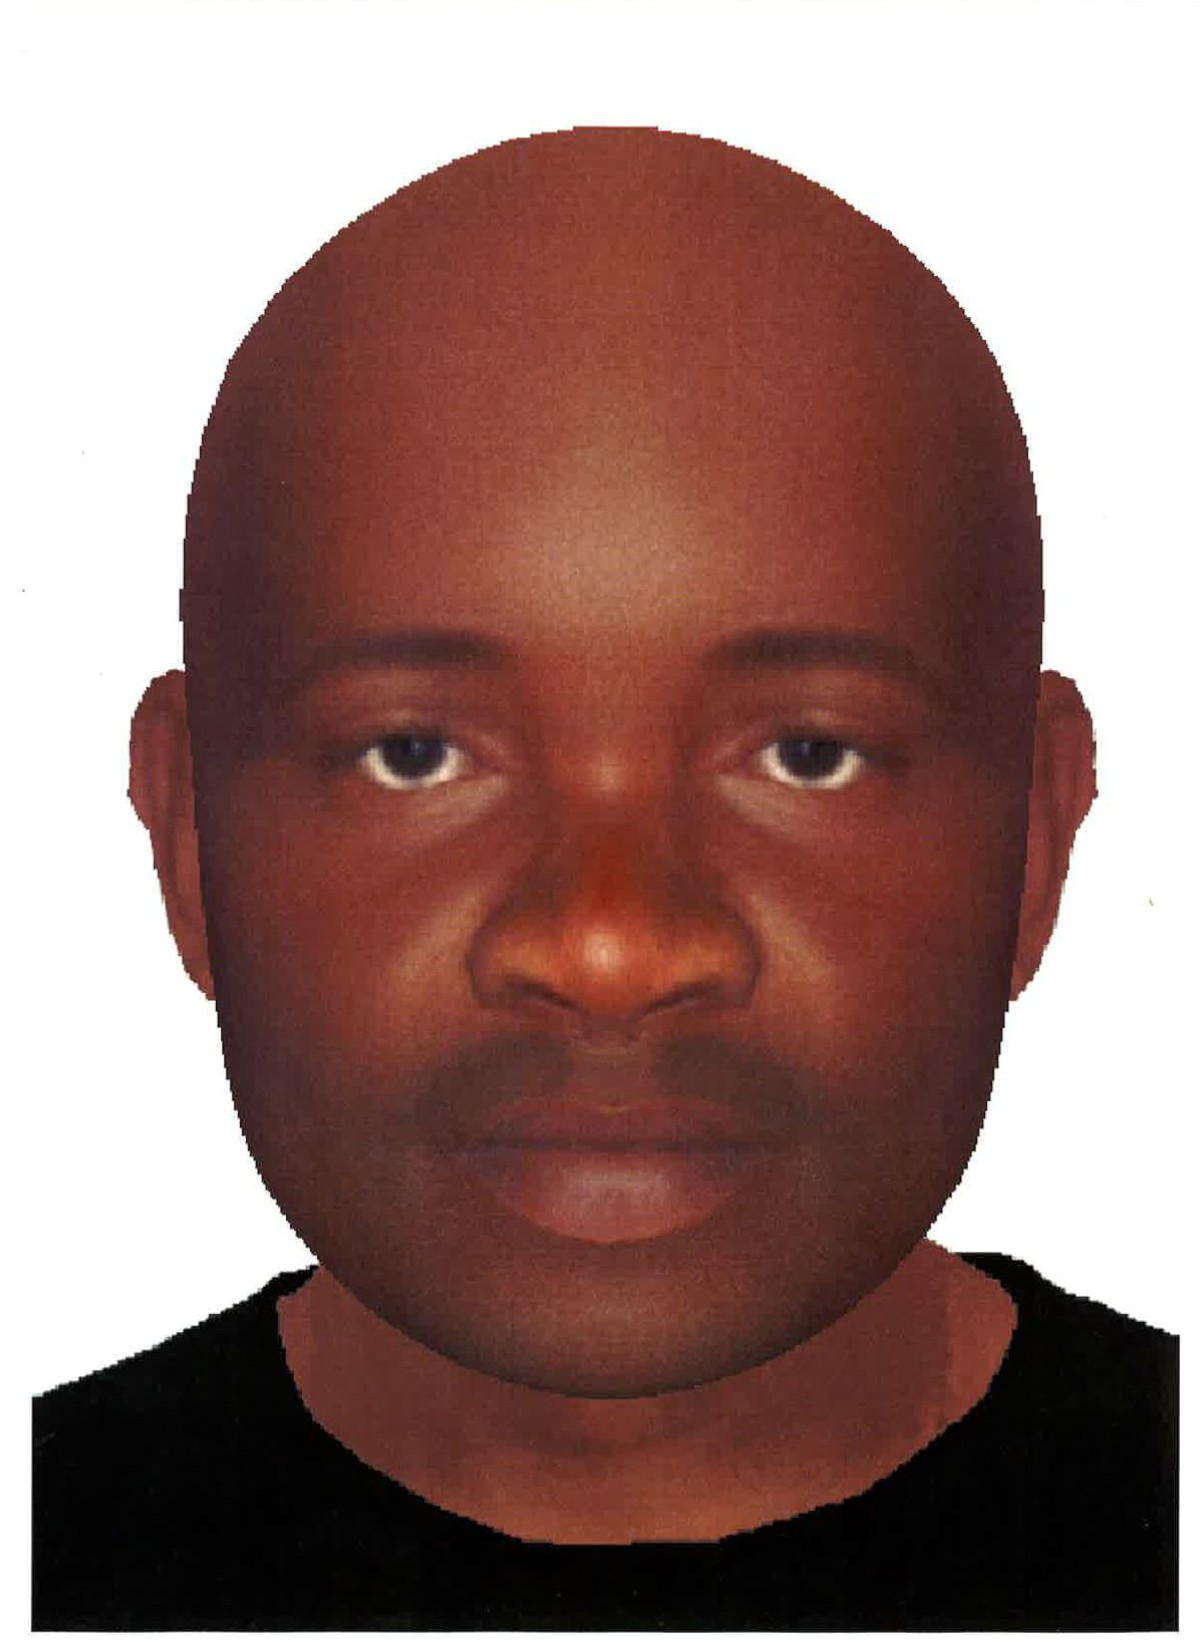 Police have released an e-fit of the suspect